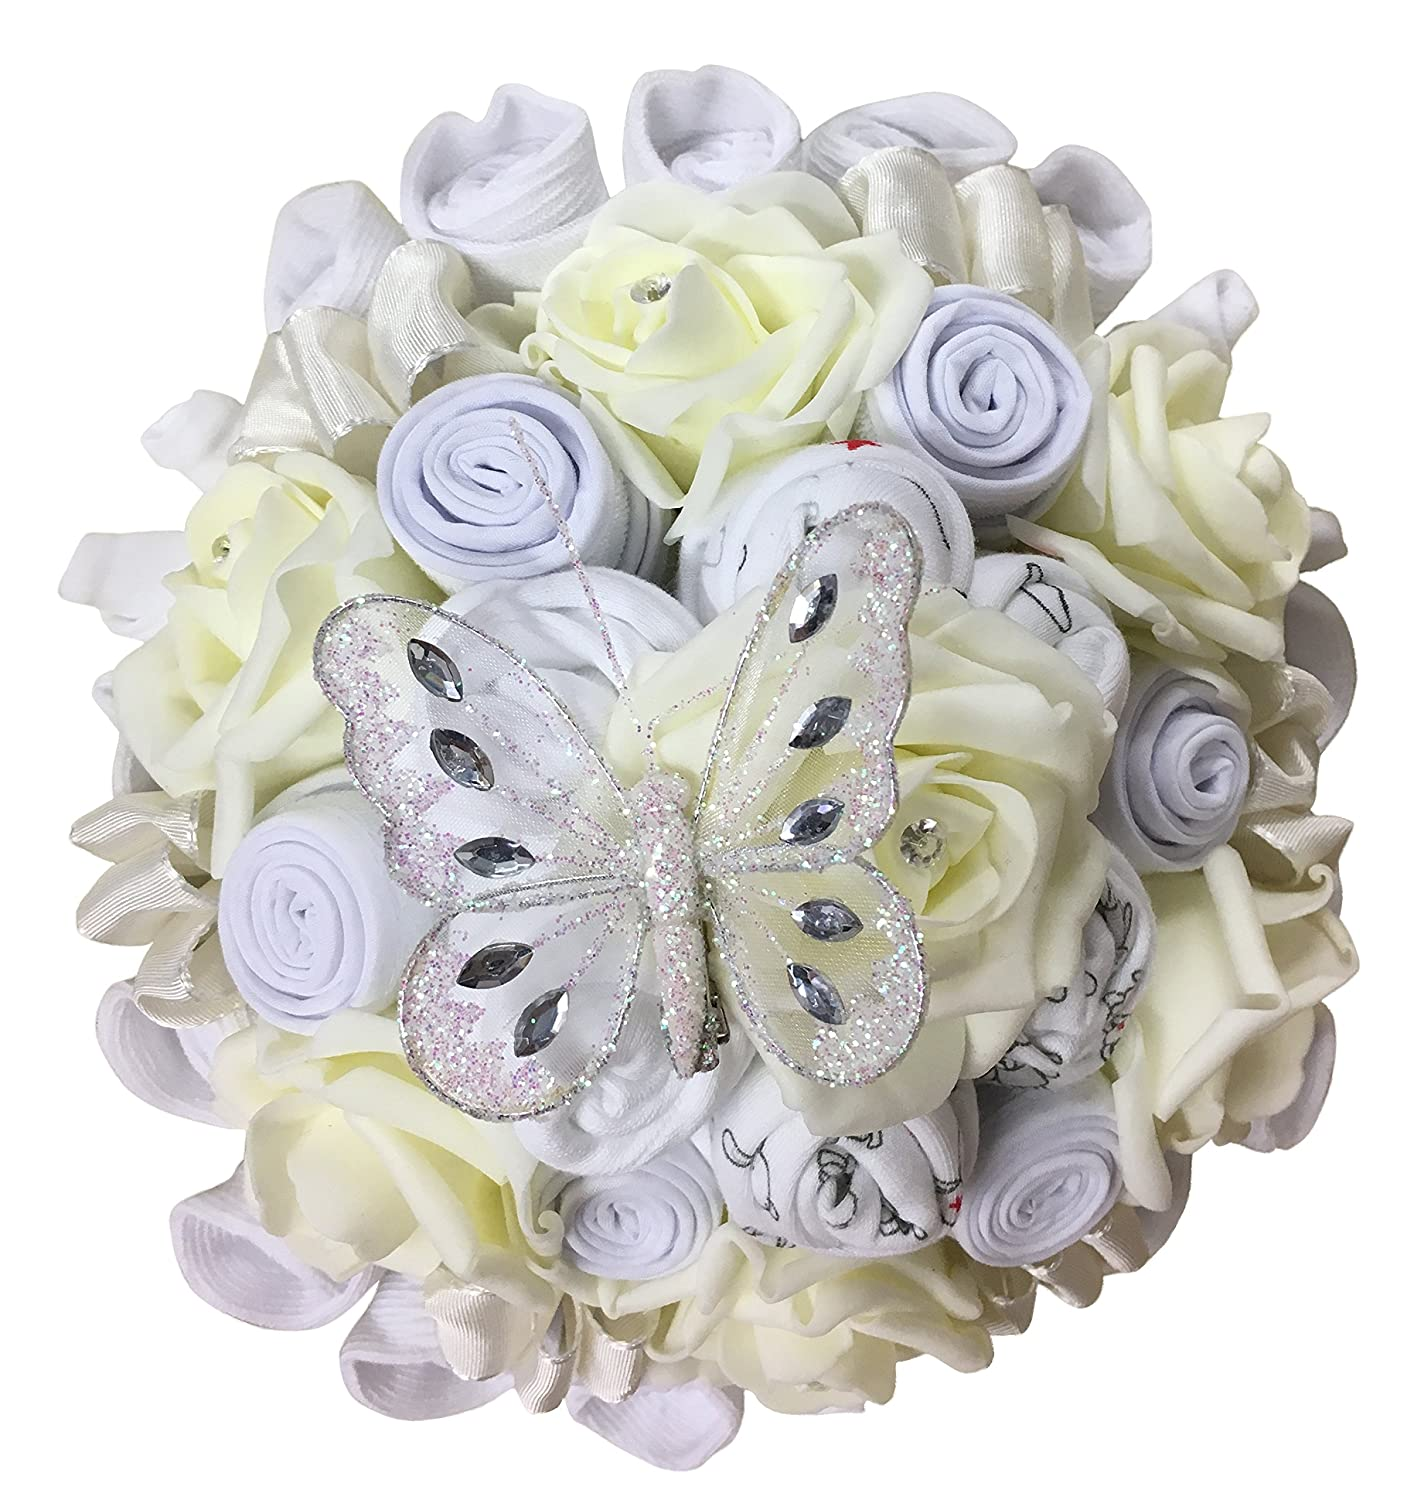 Baby Clothing Bouquet Baby Shower Gift Unisex Neutral 6-9 Months